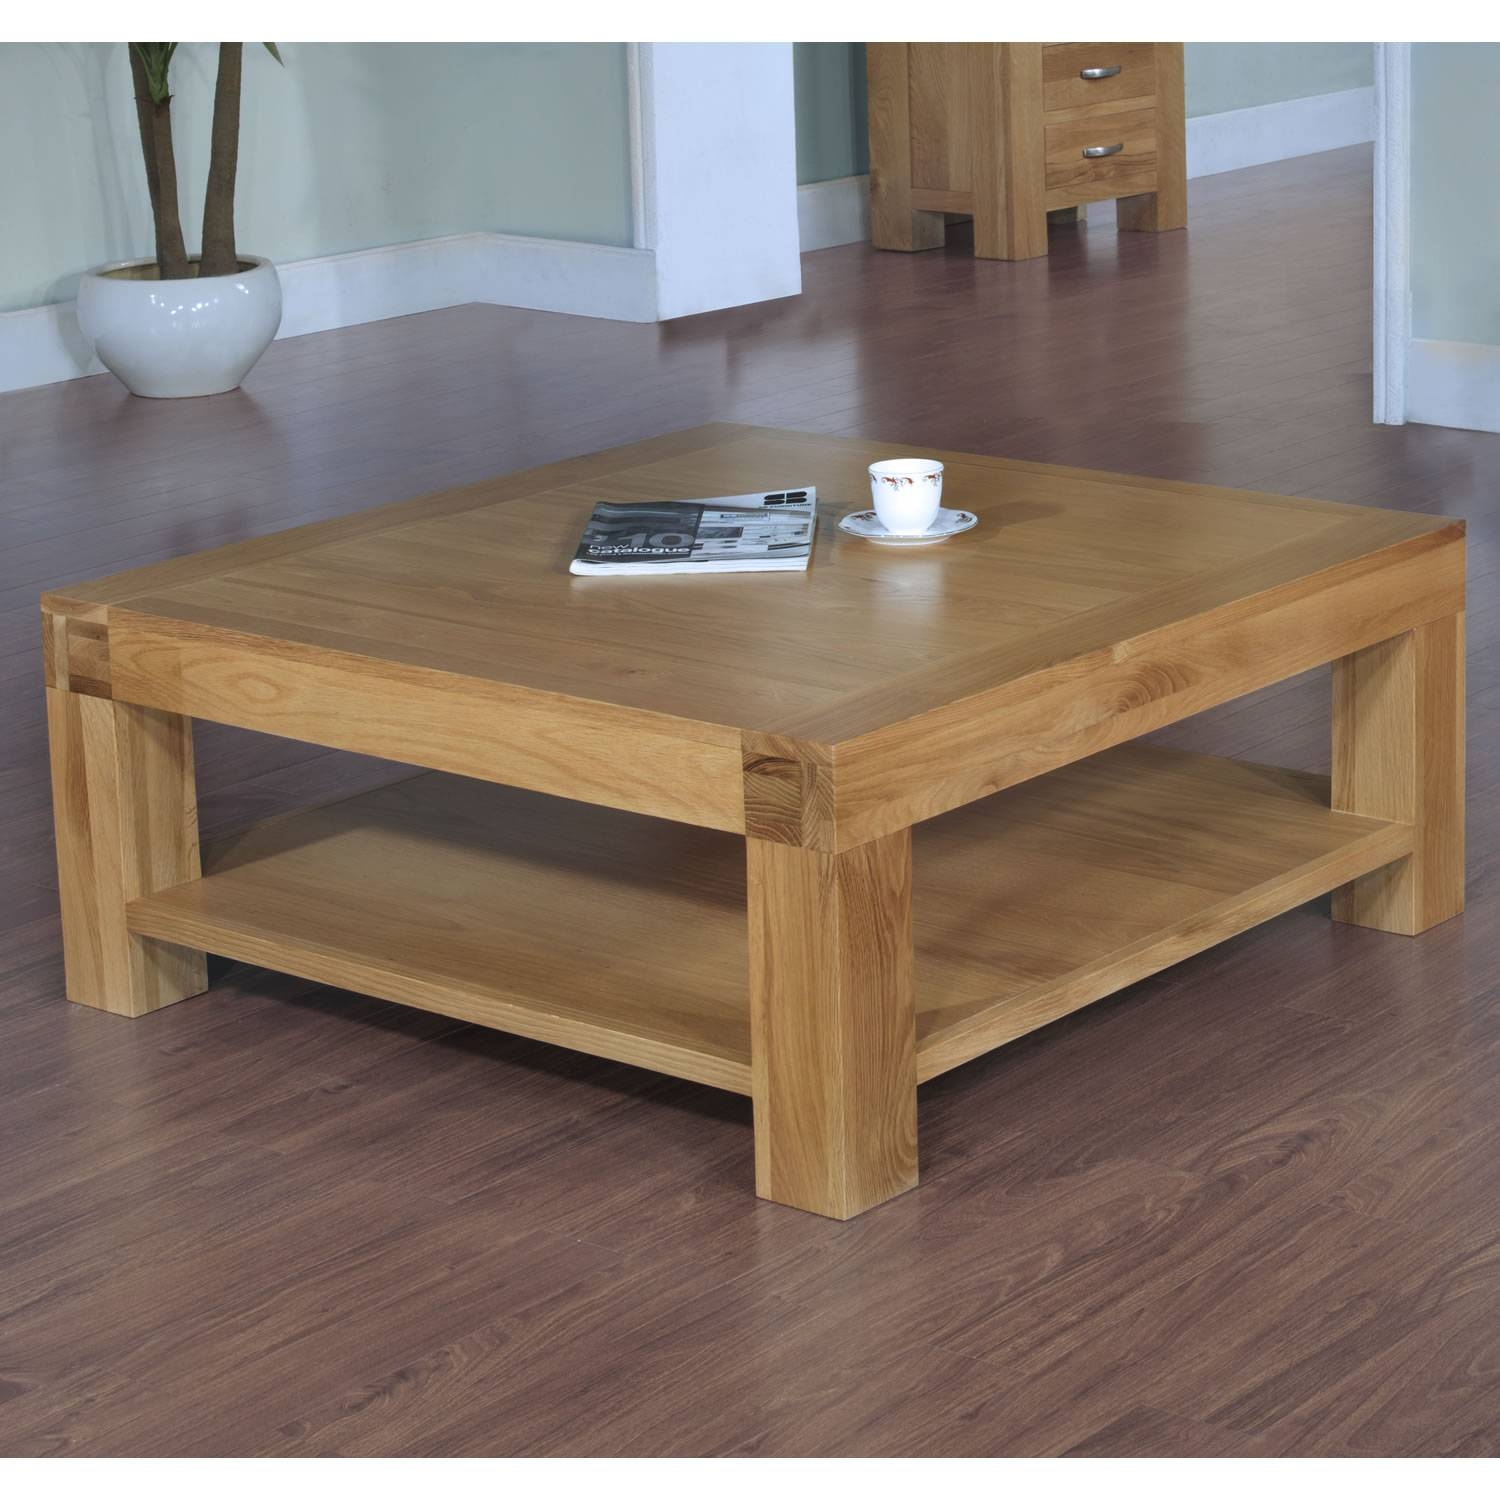 Helpful Square Coffee Tables Home Furniture And Decor - Jericho throughout Large Square Coffee Tables (Image 12 of 30)